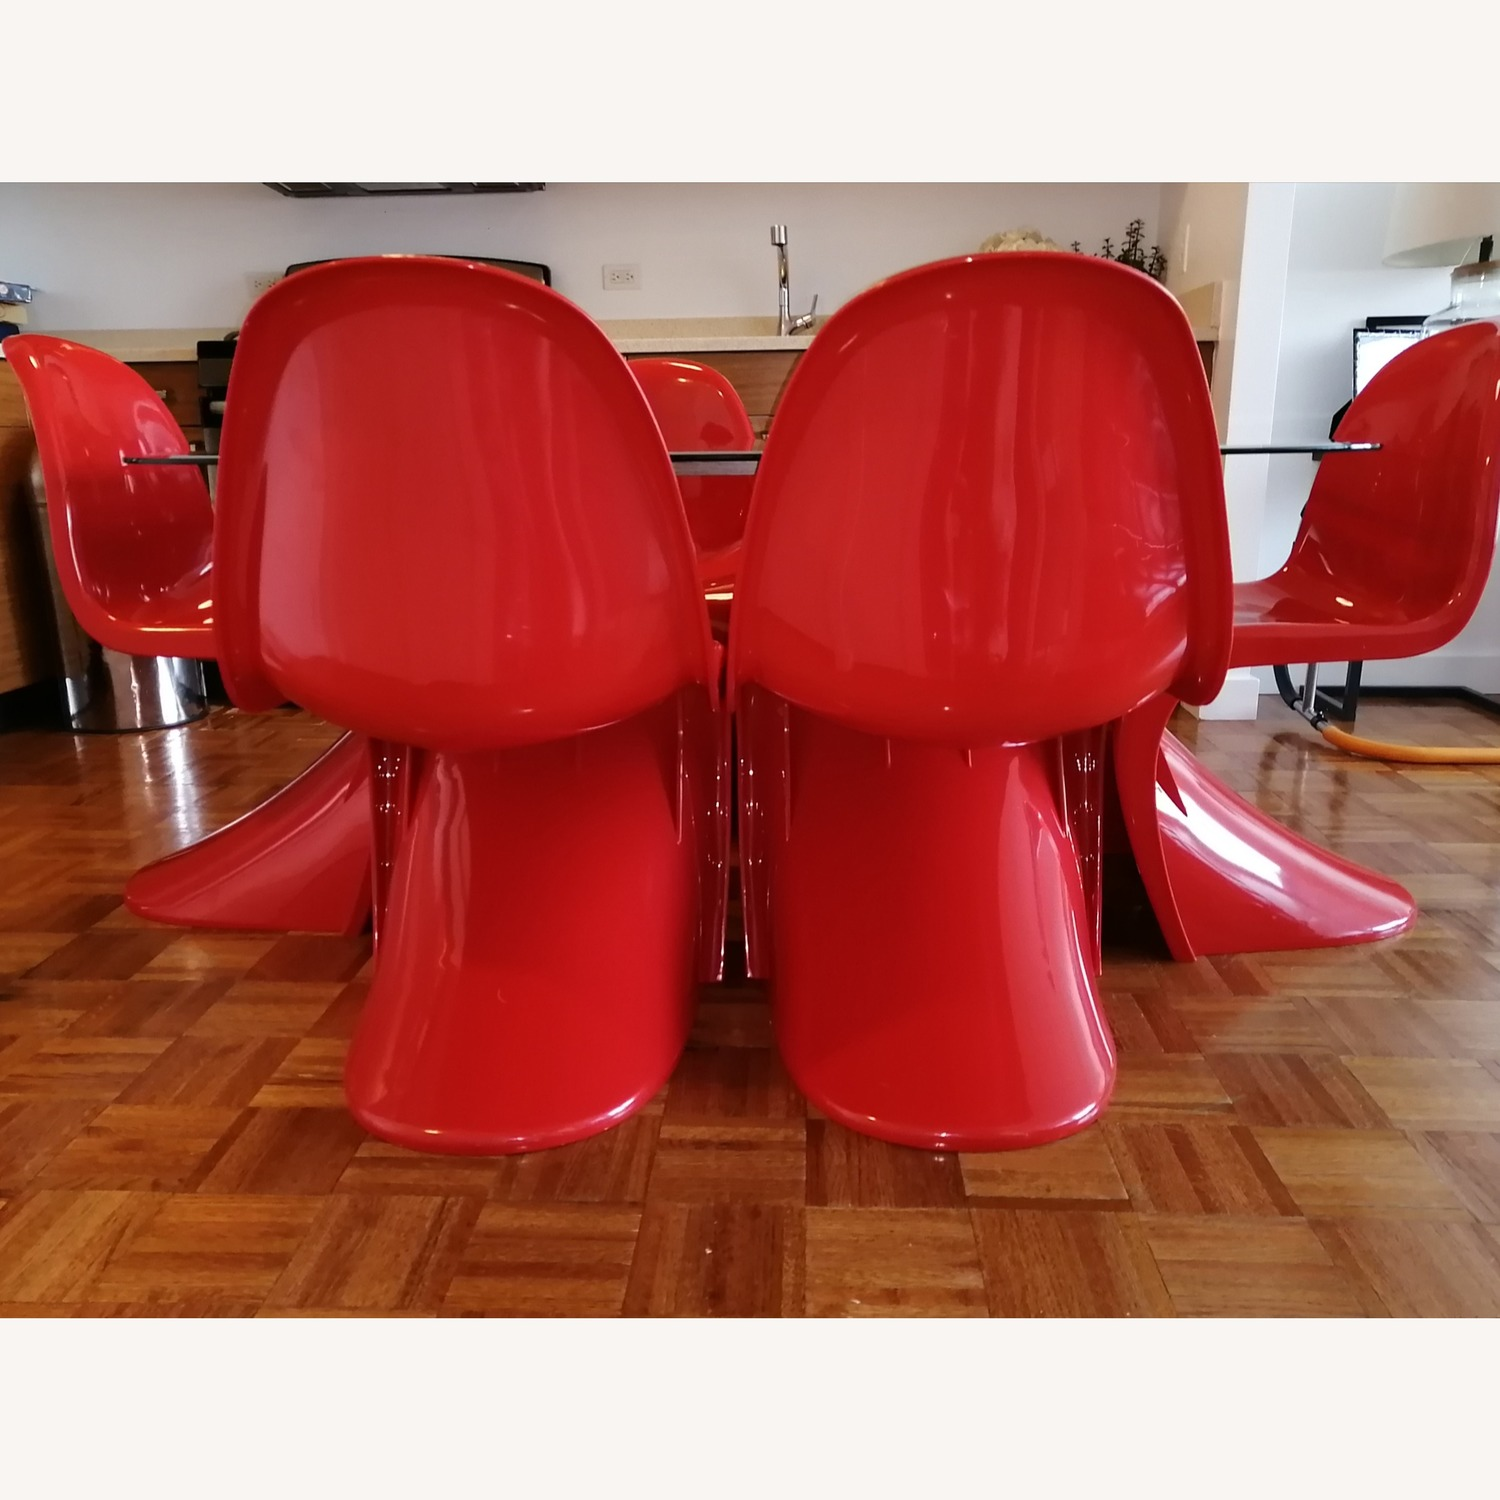 6 Red Acrylic Panton Chairs - image-3